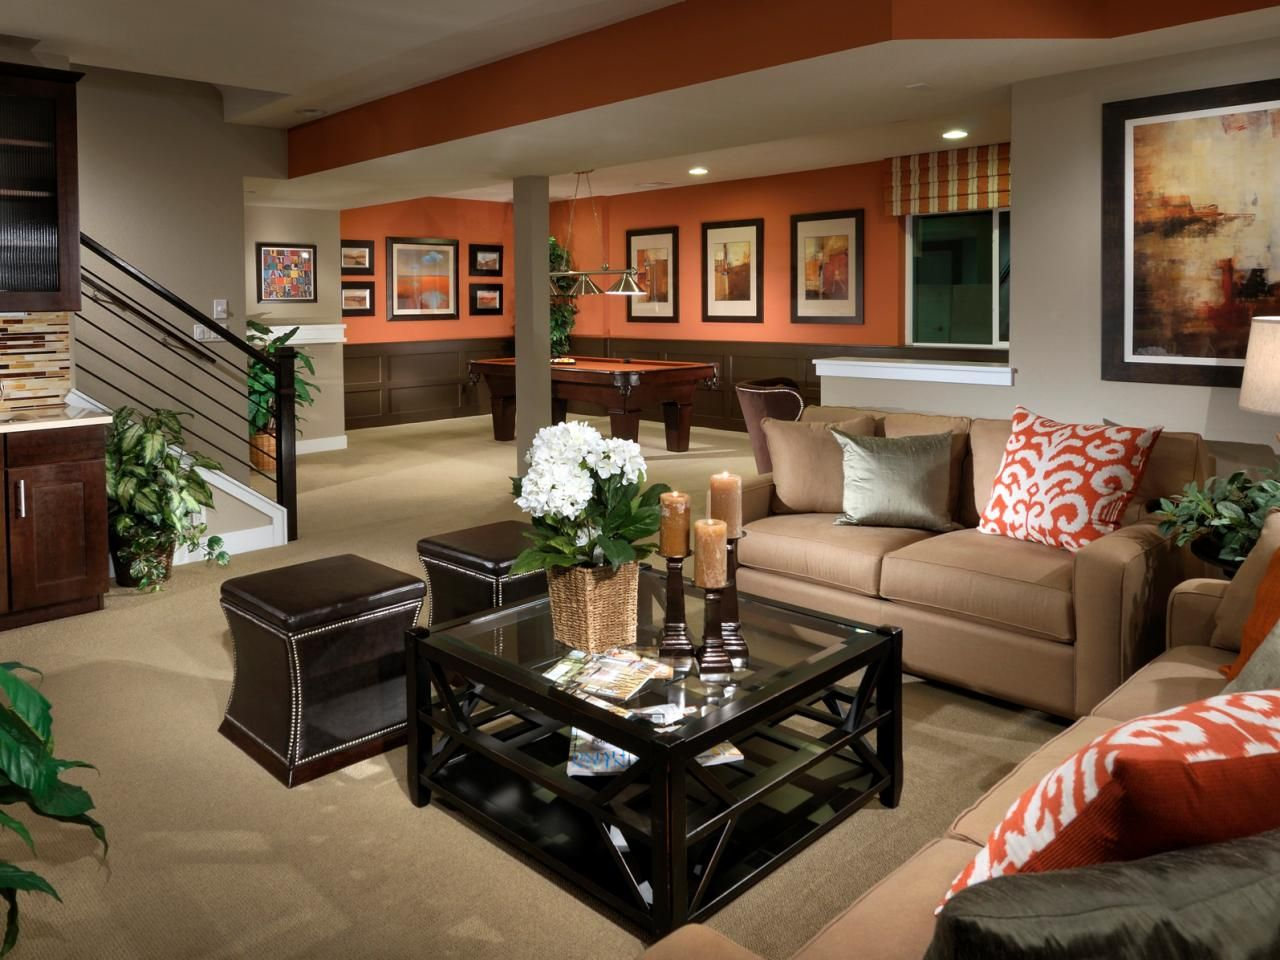 Finished Basements Add Space And Home Value Finished Basement Designs Game Room Basement Finishing Basement